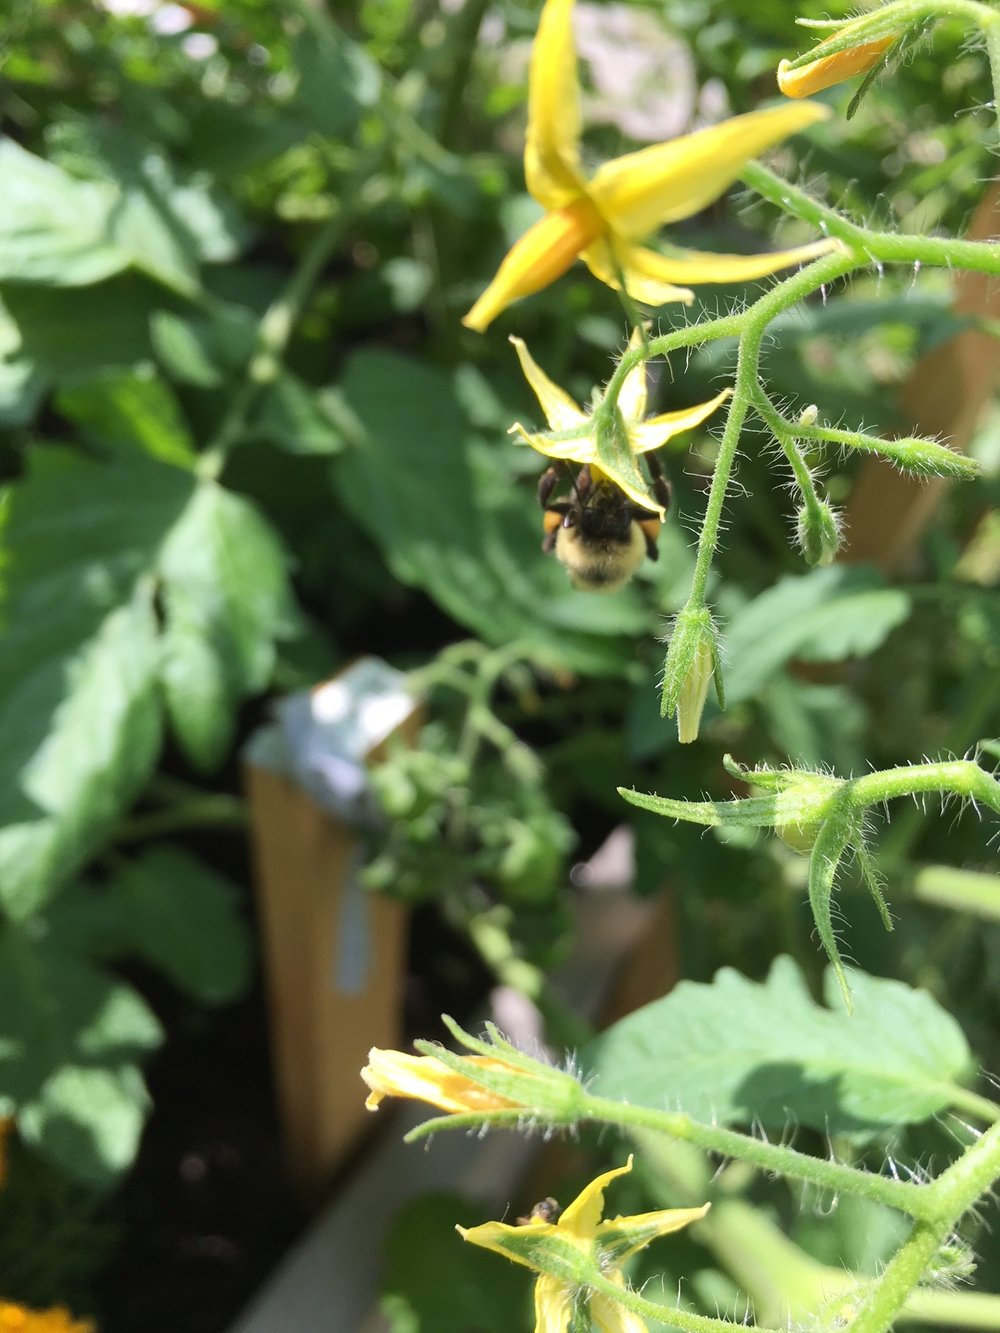 This bee is doing all the good work in our garden!